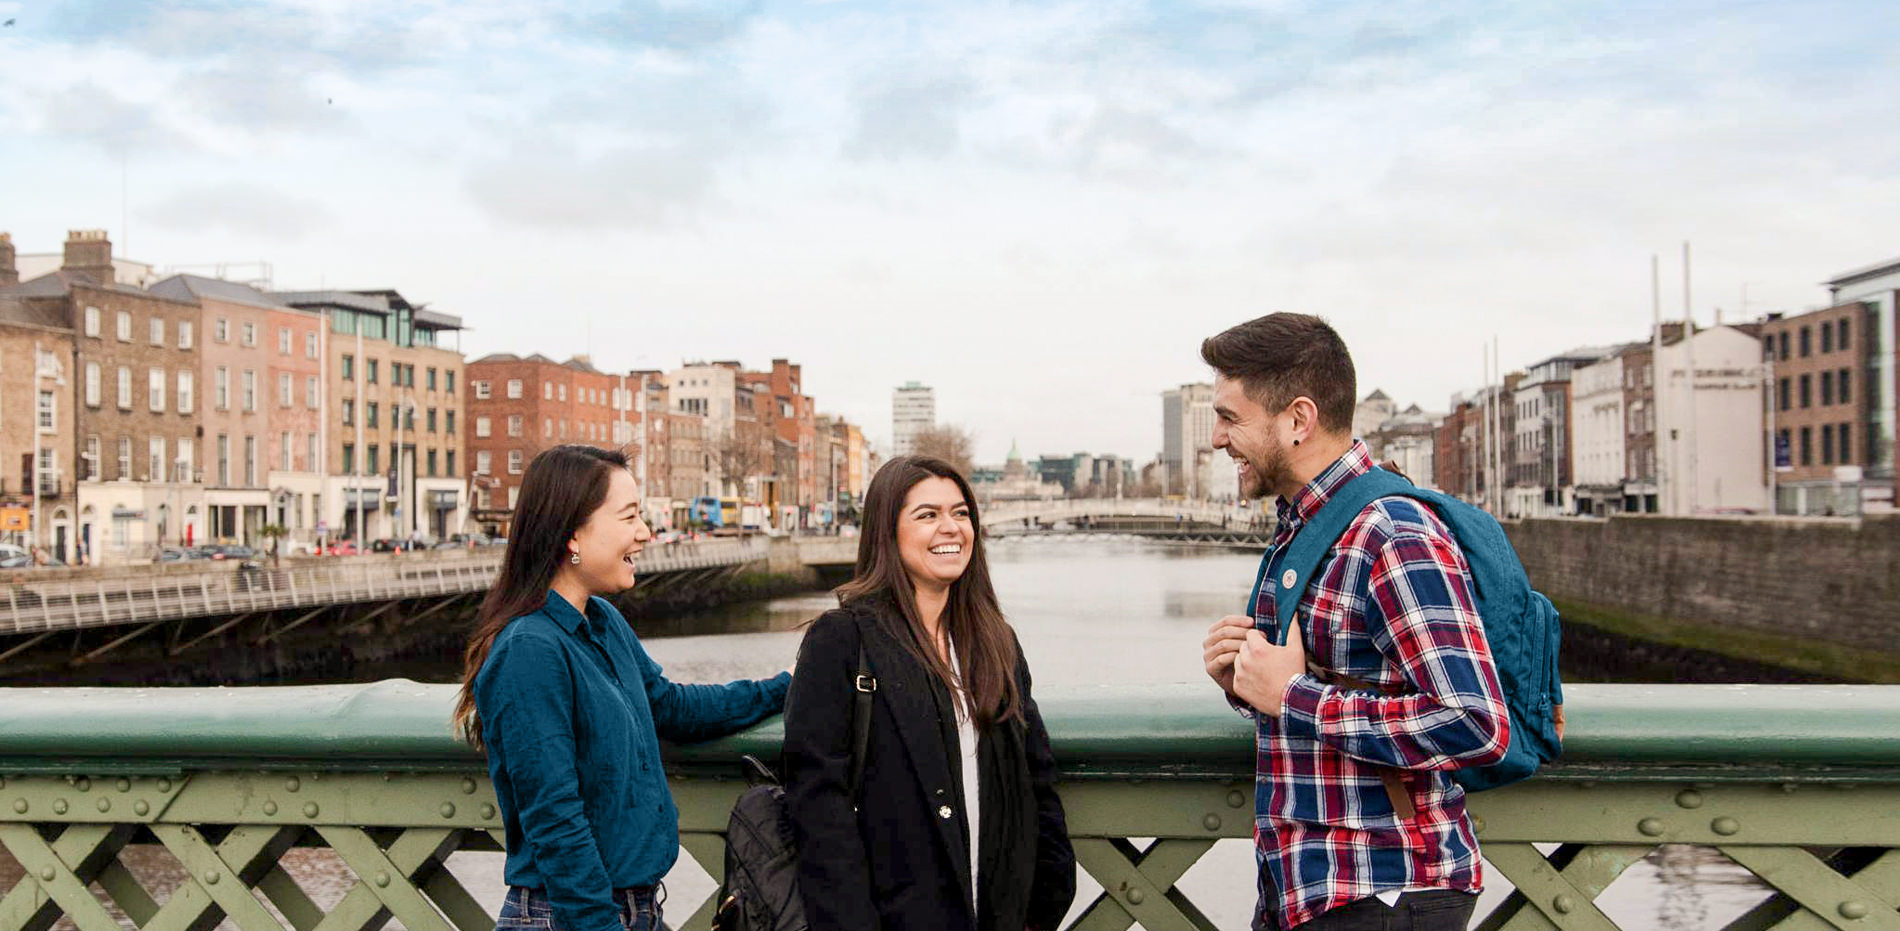 STUDENT VISA IN IRELAND